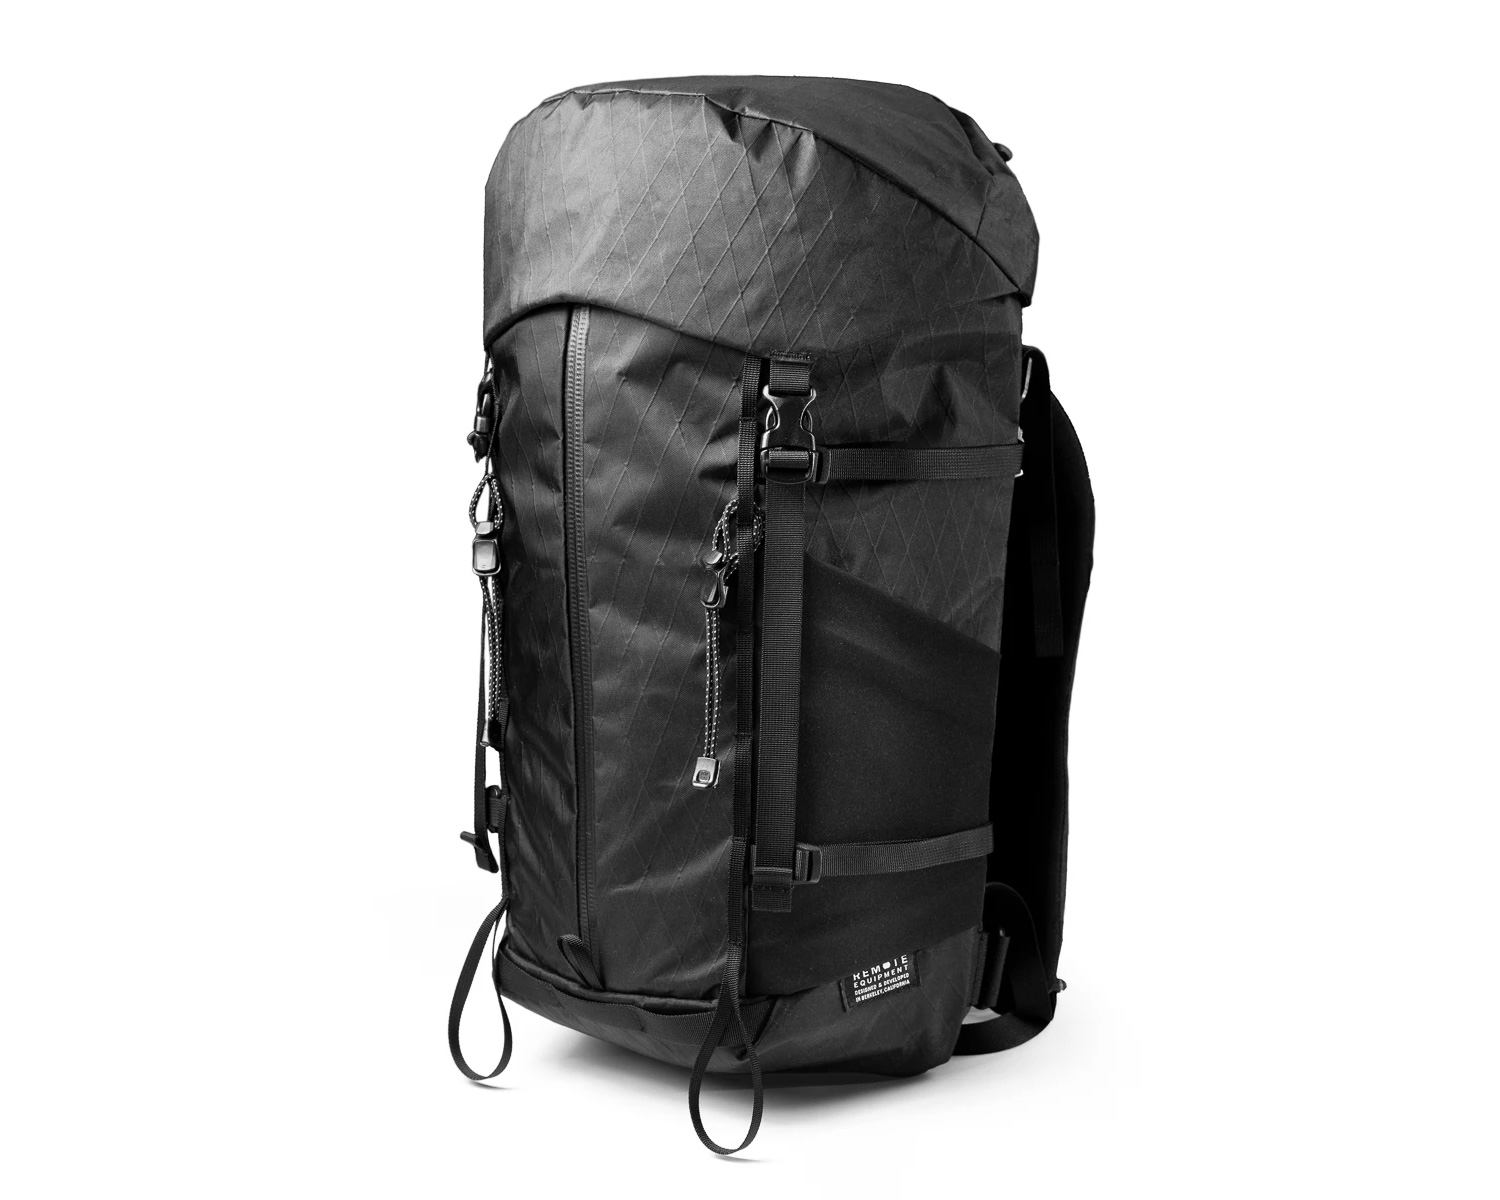 Remote Equipment's Charlie 25 is a Tough, Technical Daypack at werd.com